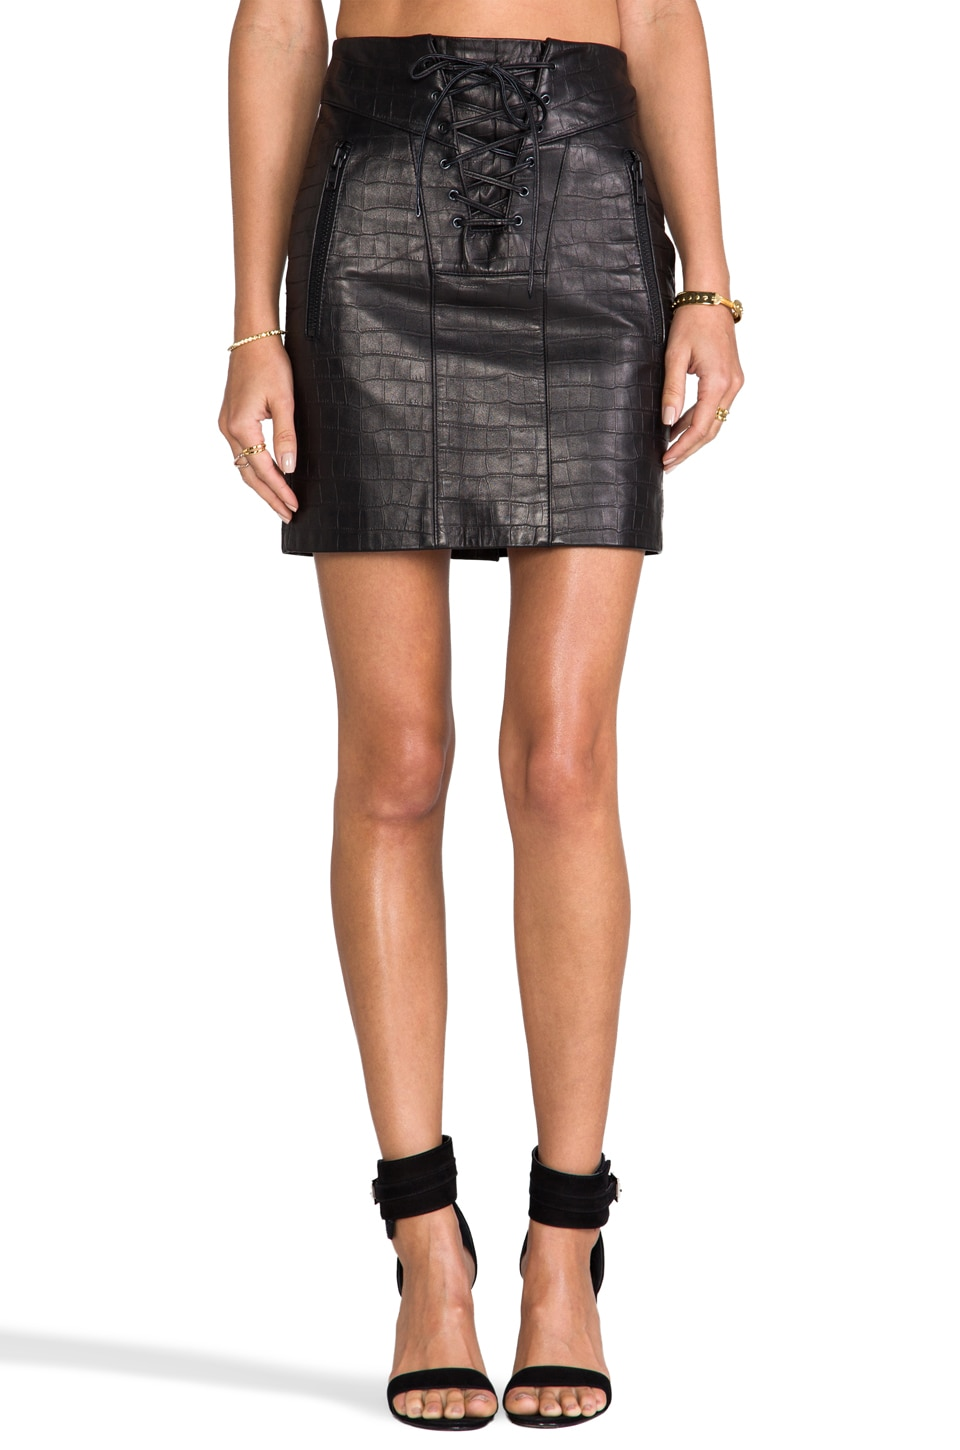 April, May Chazz Croco Skirt in Black